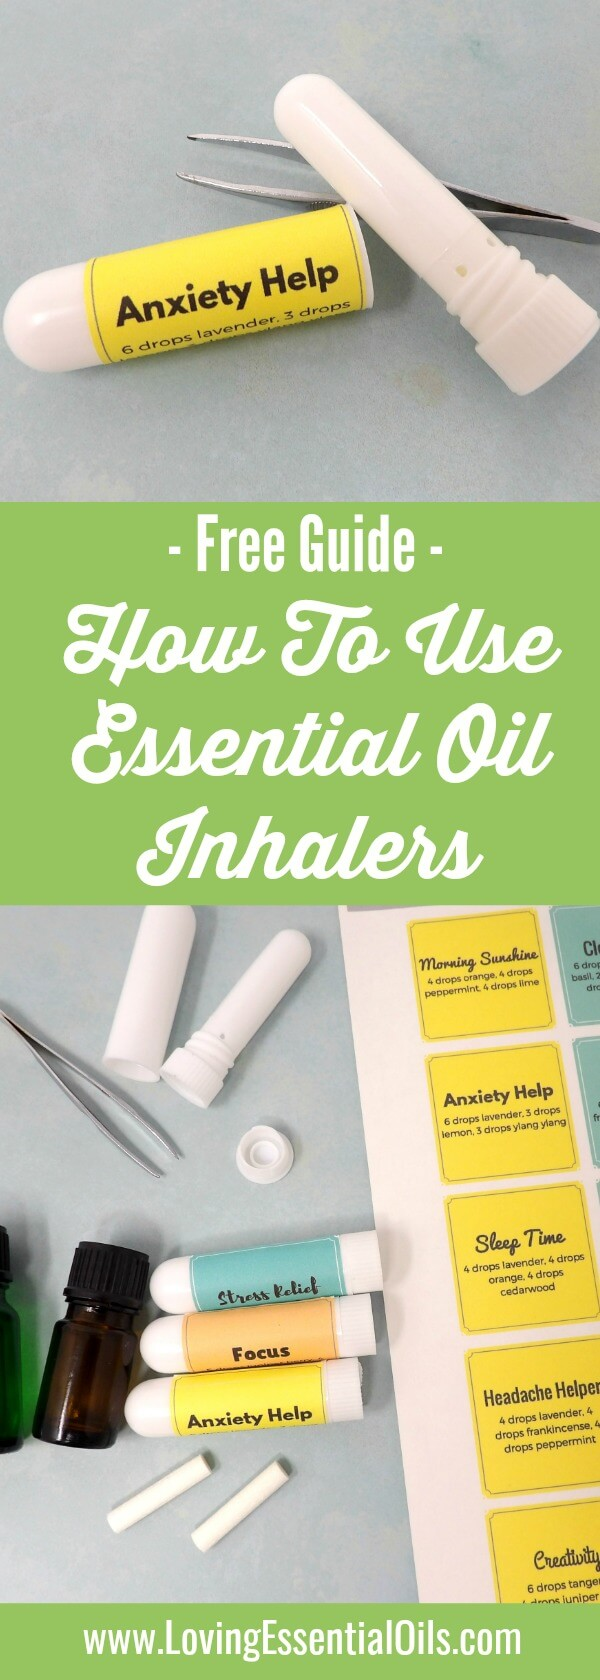 How To Use An Essential Oil Inhaler For Aromatherapy by Loving Essential Oils